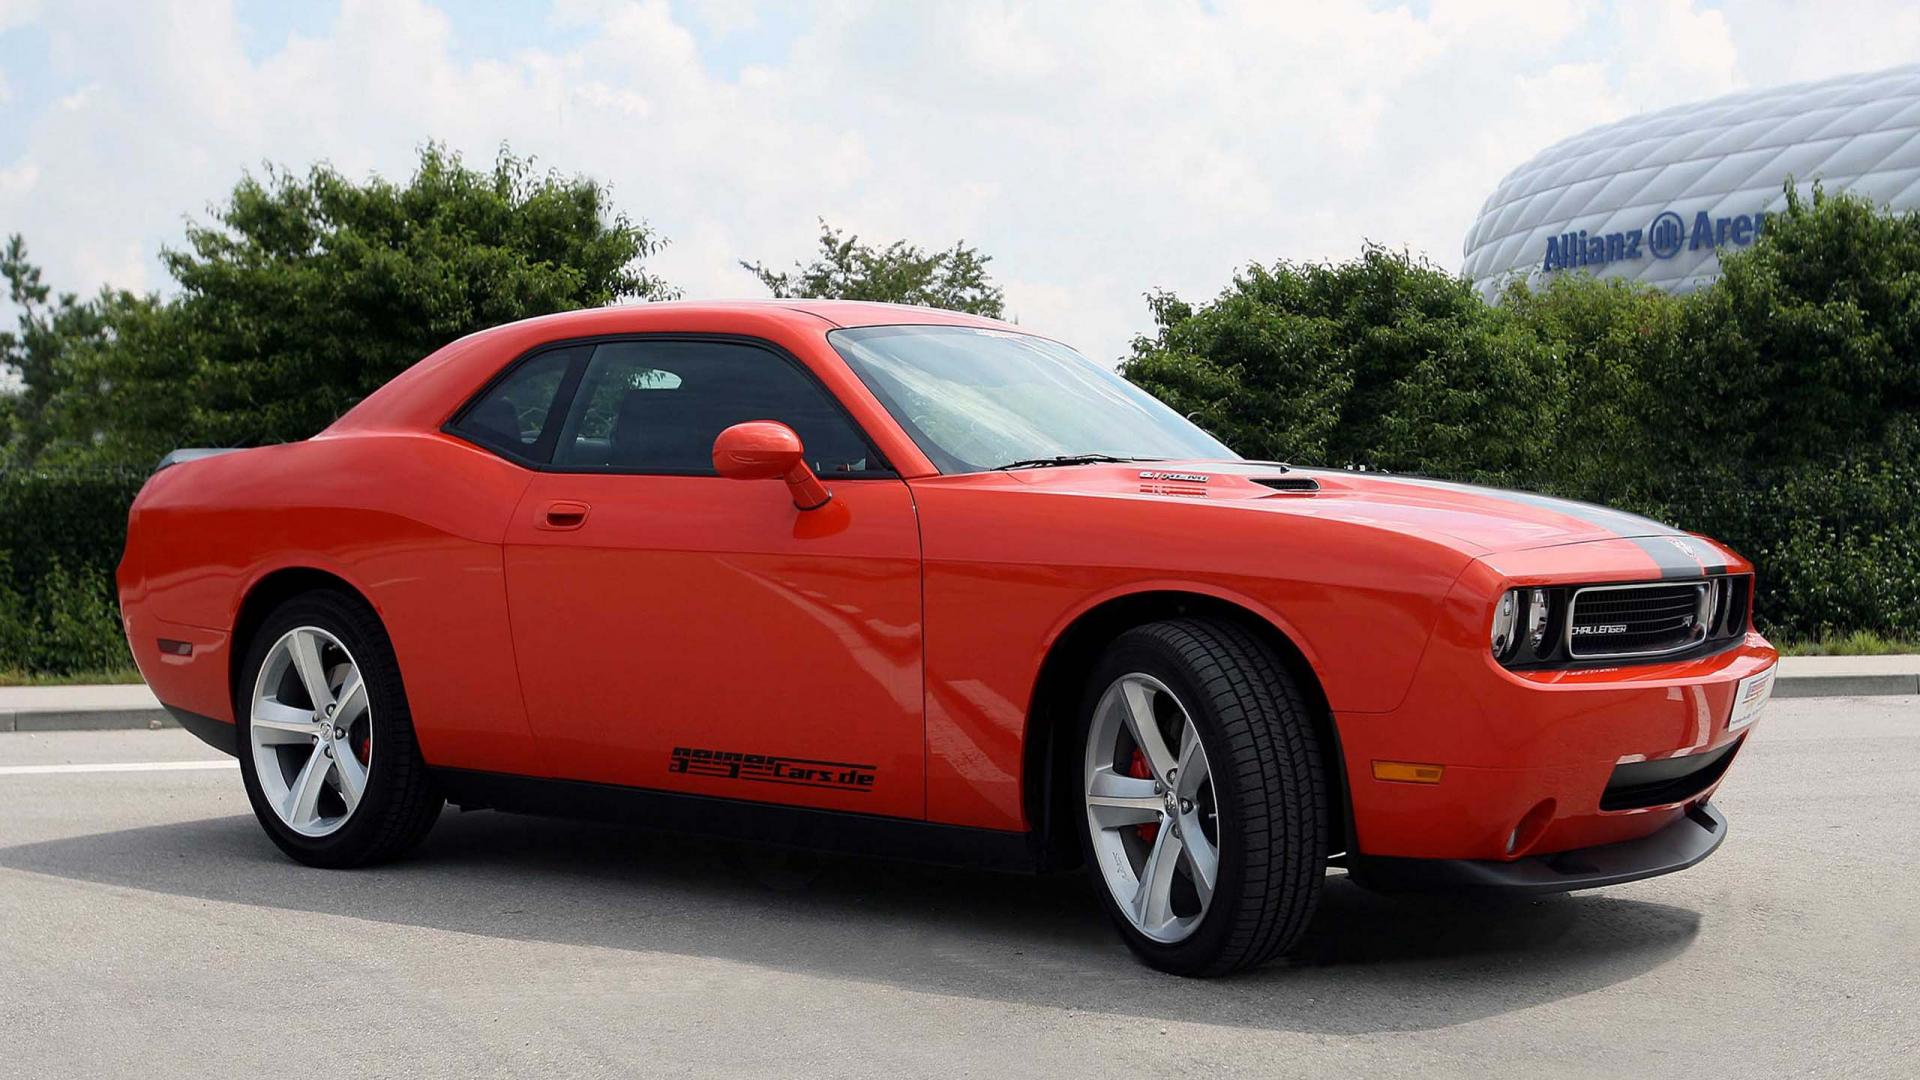 de Dodge Challenger Srt8 front angle Desktop Wallpaper HD 1920x1080 1920x1080